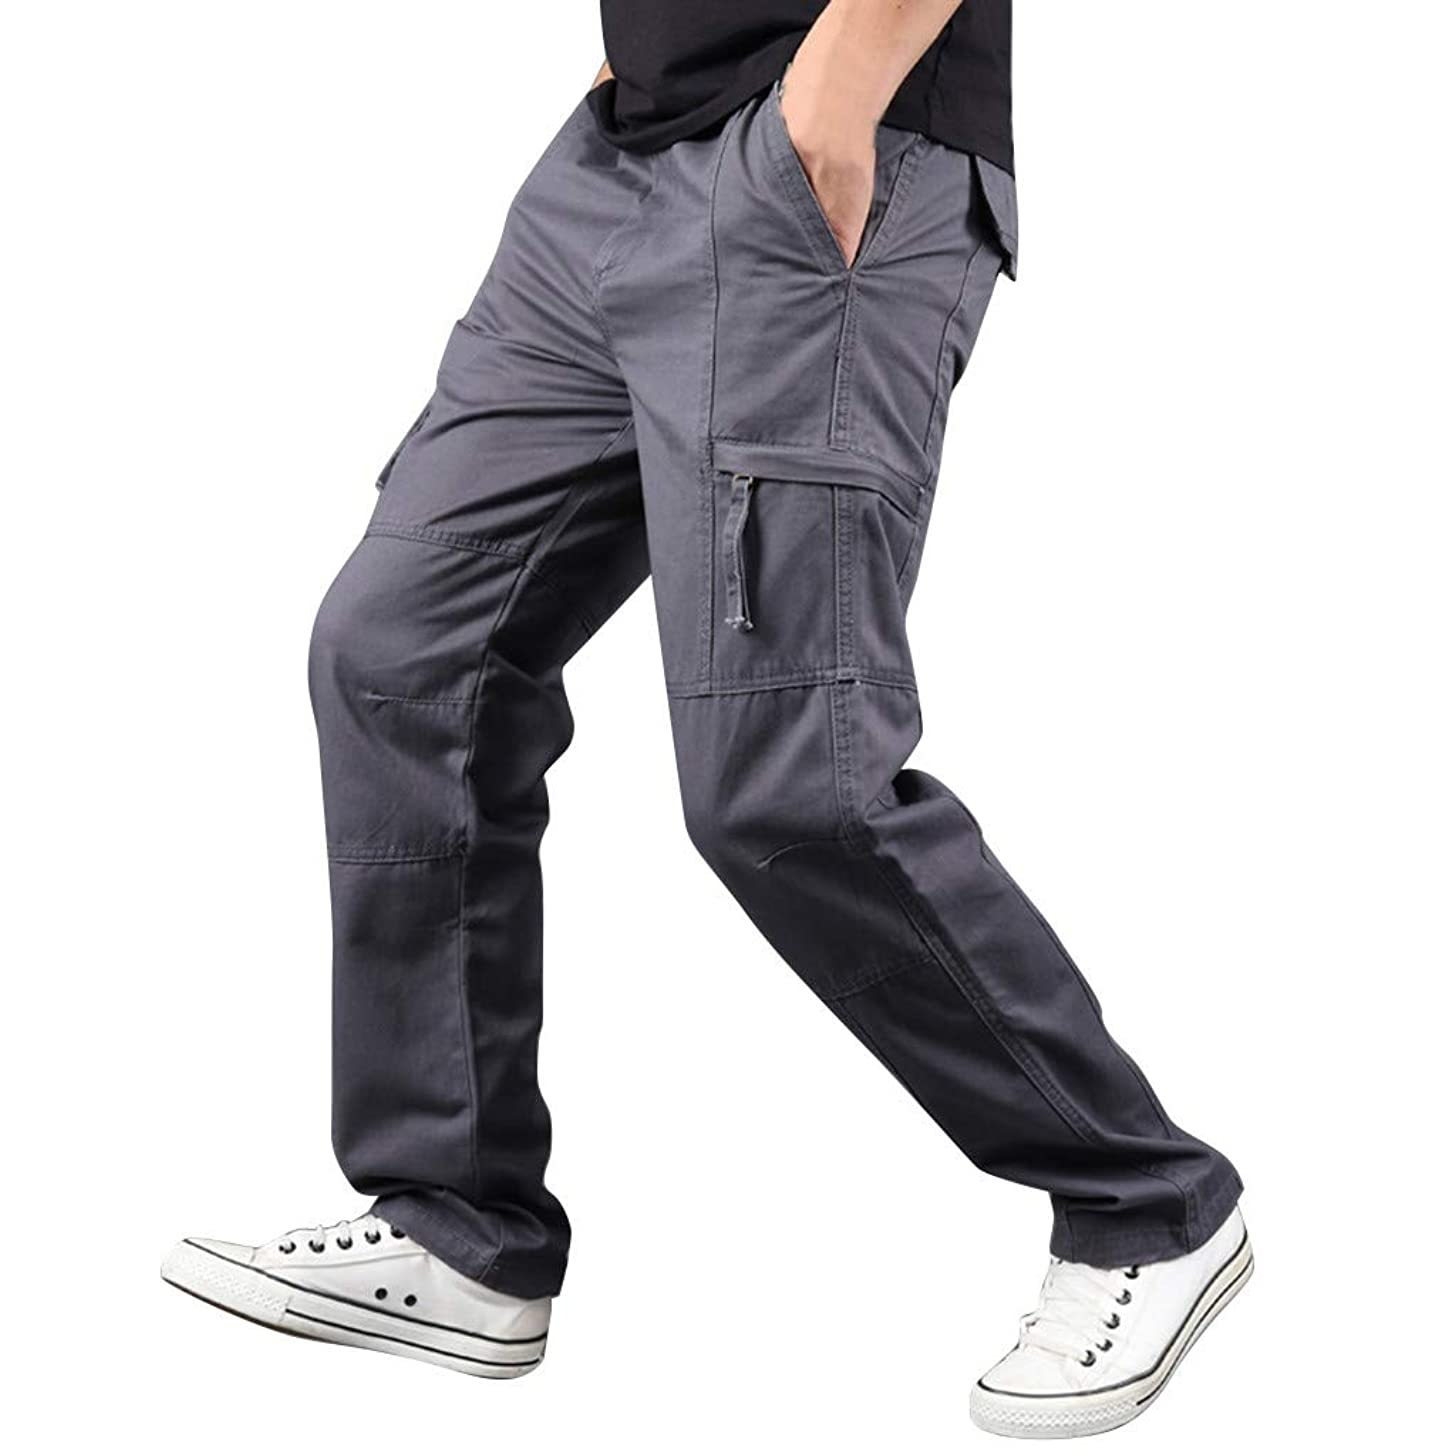 LUCAMORE Men's Casual Solid Outdoor Pants Straight Leg Sports Multi-Pockets Cargo Pants